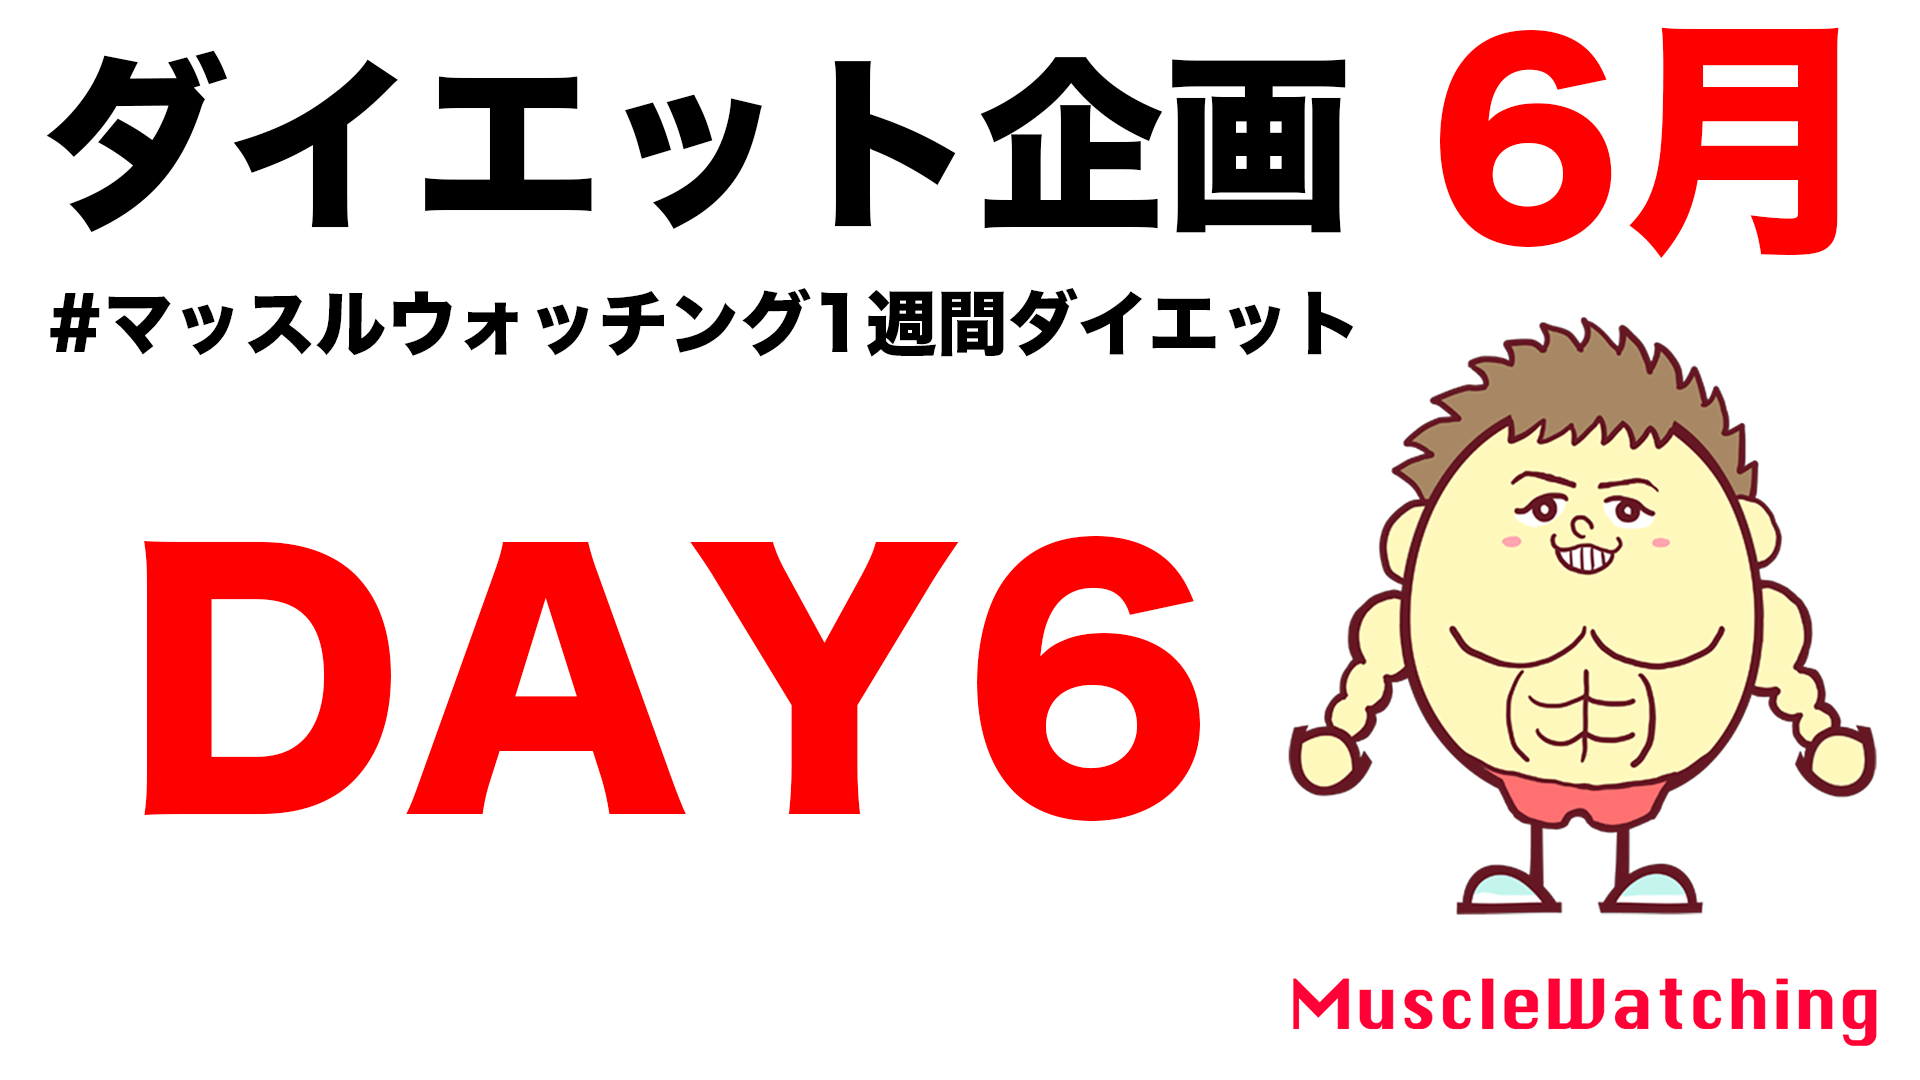 【DAY6】女性限定1週間ダイエット企画 6月| Muscle Watching